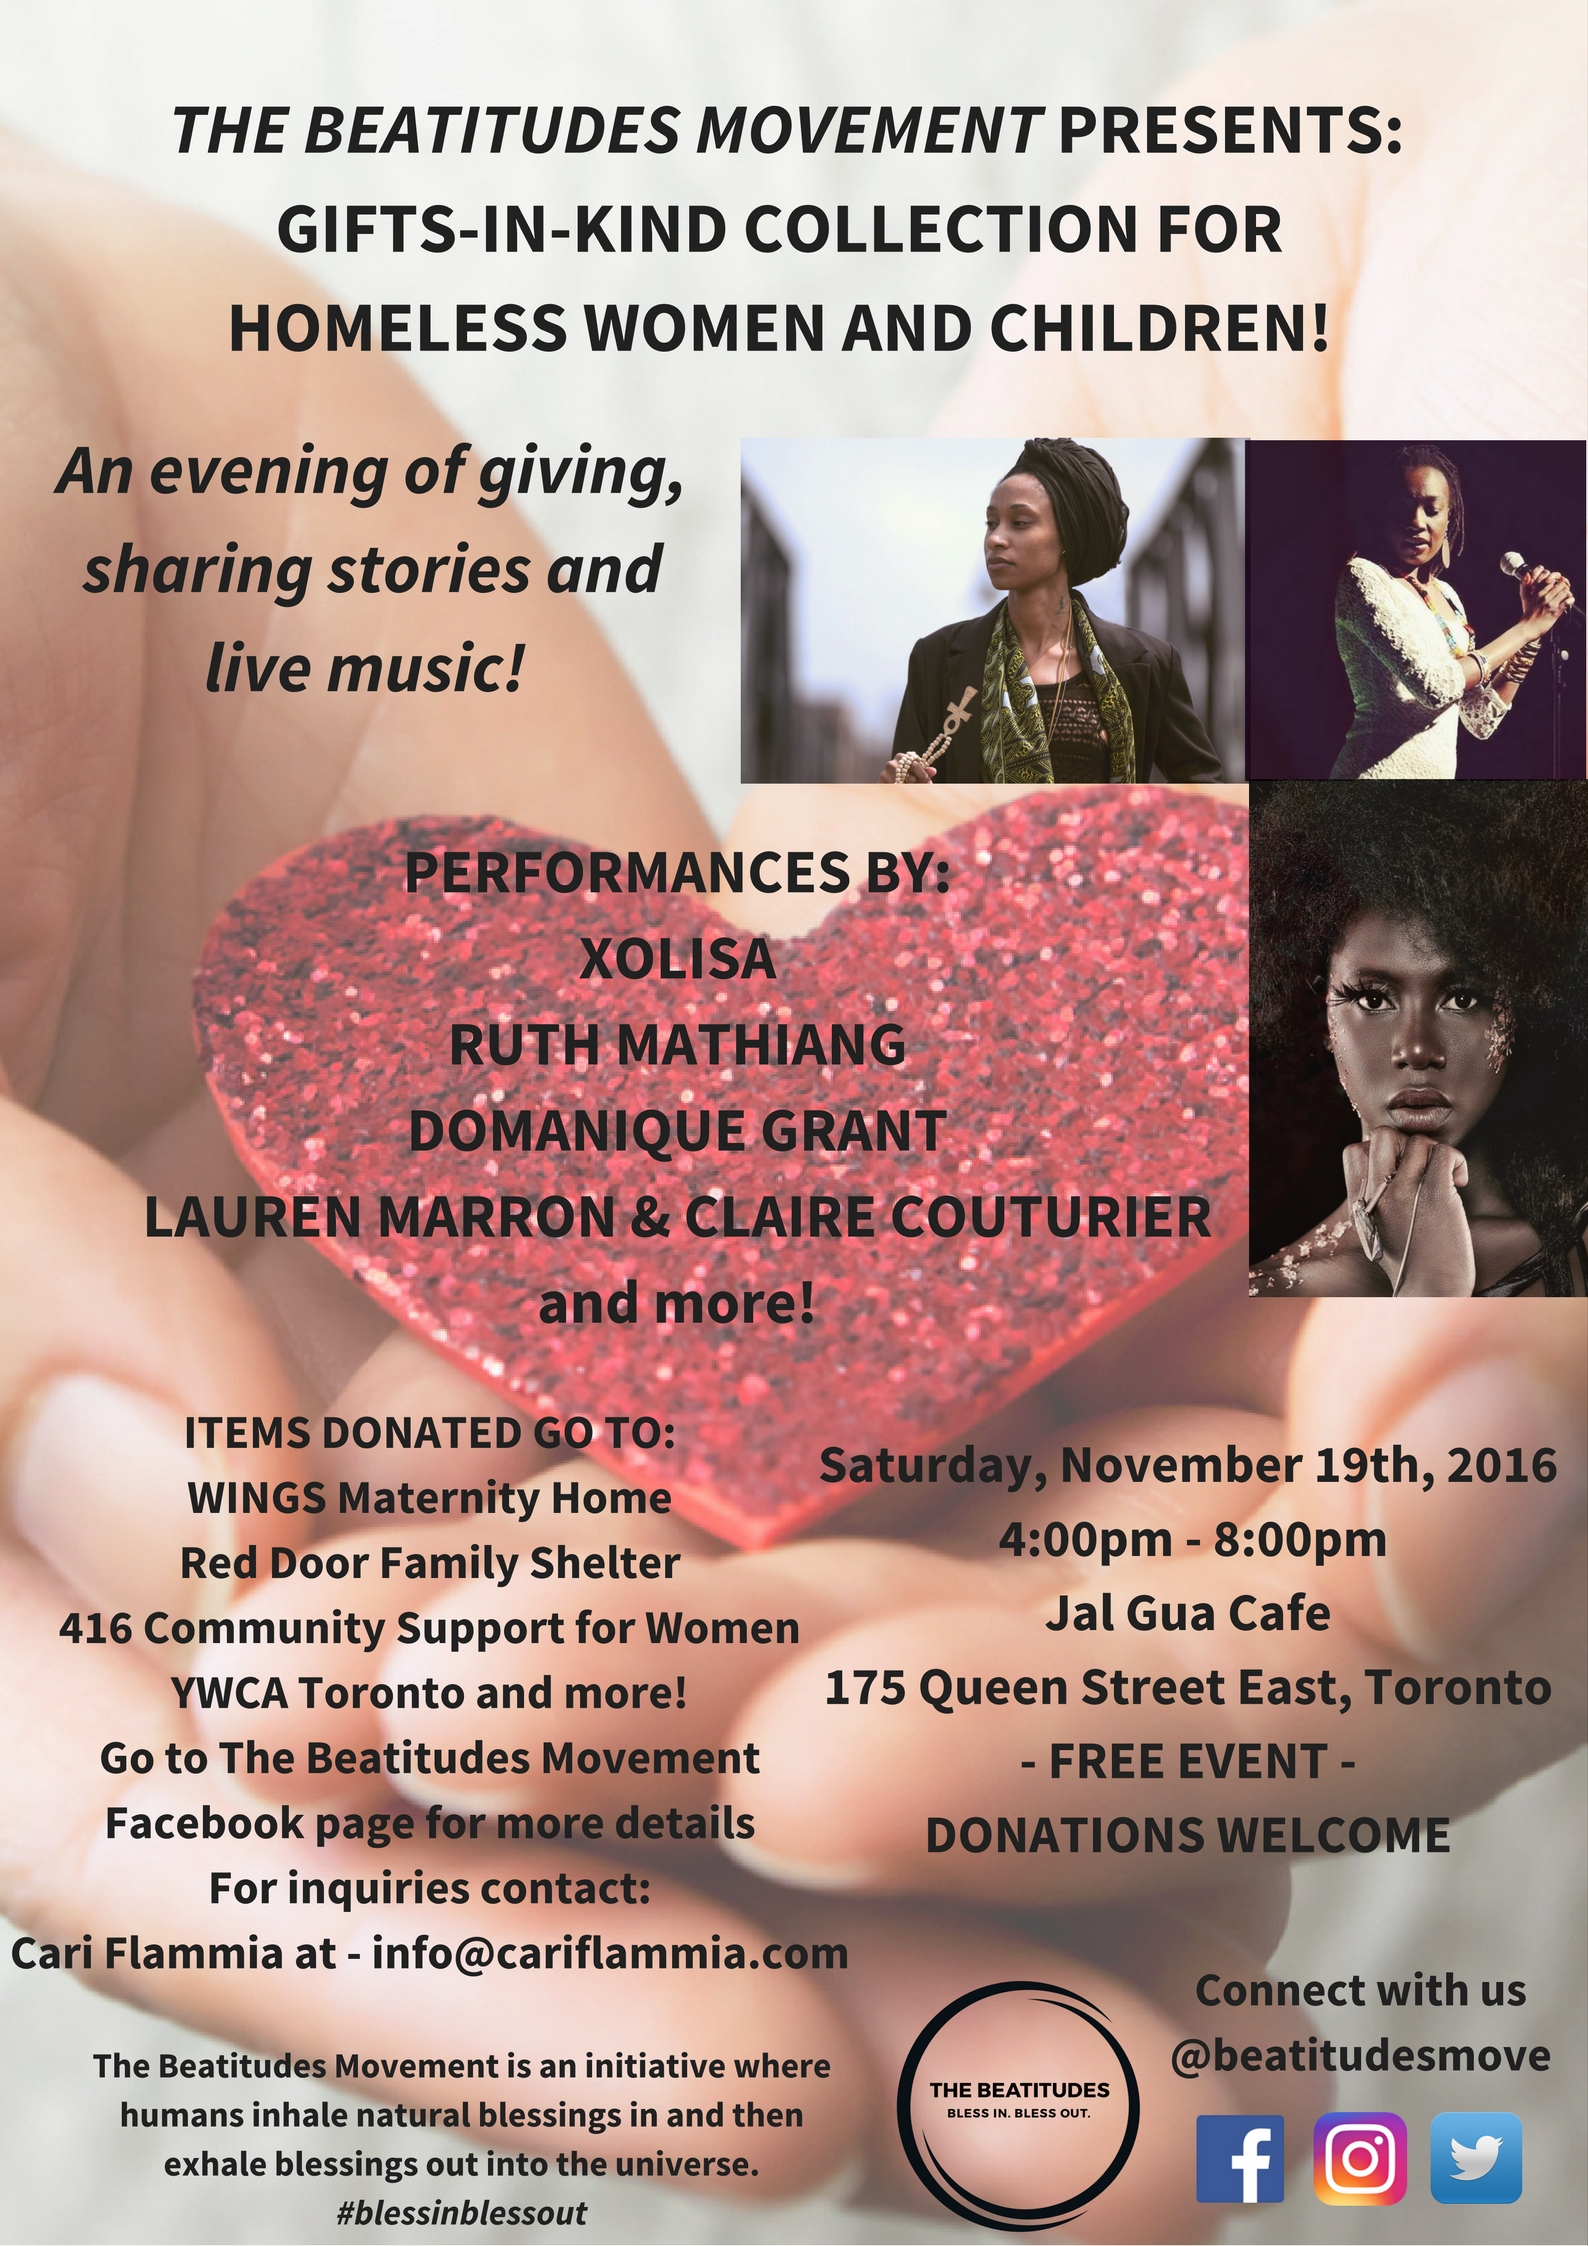 THE BEATITUDES MOVEMENT PRESENTS_ GIFTS-IN-KIND COLLECTION FOR HOMELESS WOMEN AND CHILDREN!.jpg